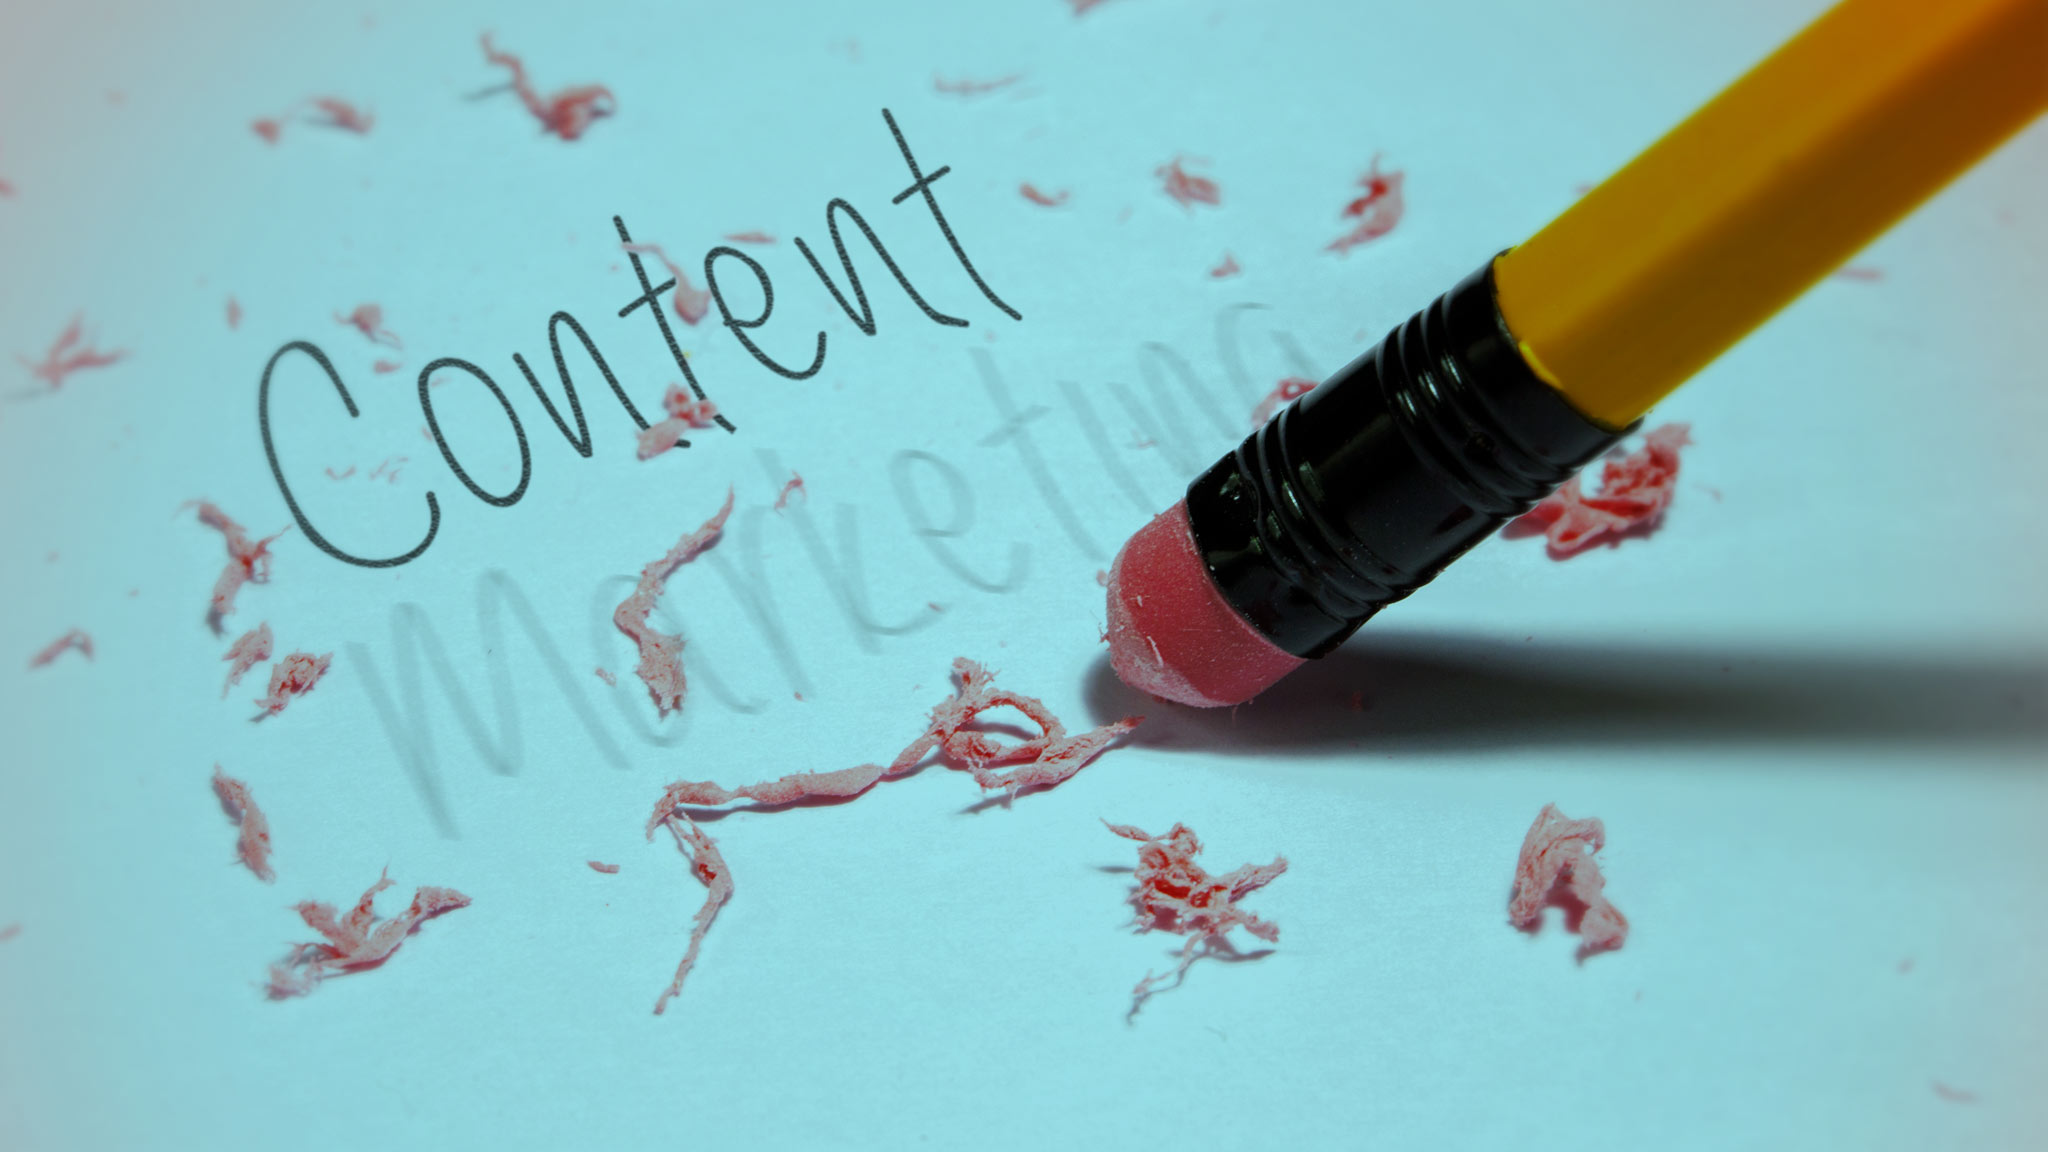 Will we end up dropping 'marketing' from 'content marketingplatform'?